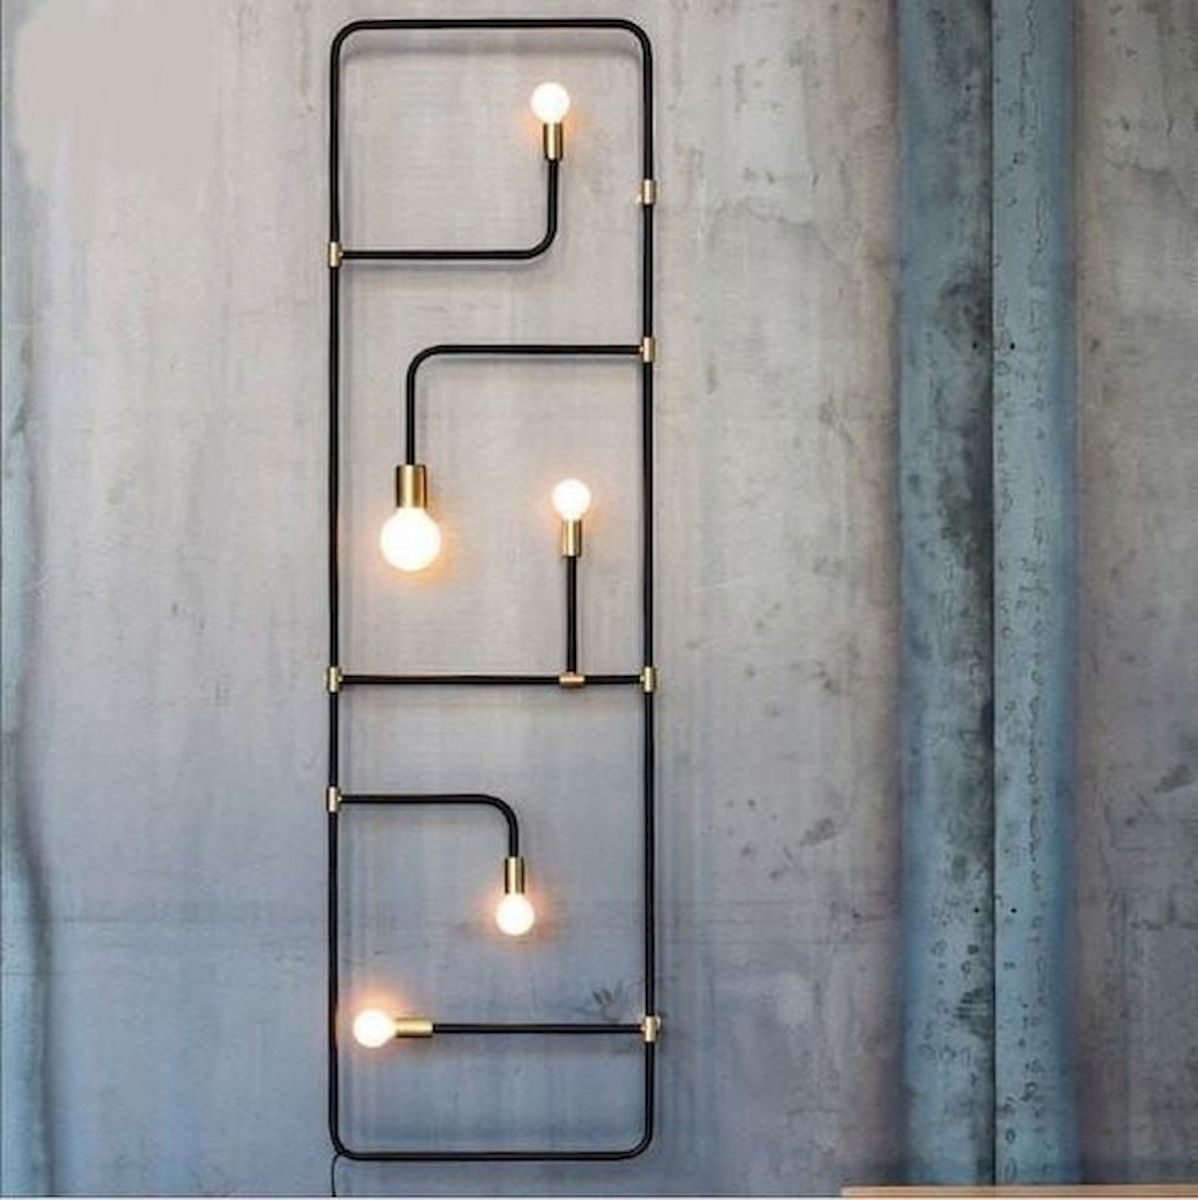 Best 33 DIY Wall Decor Built with Industrial Design (29)